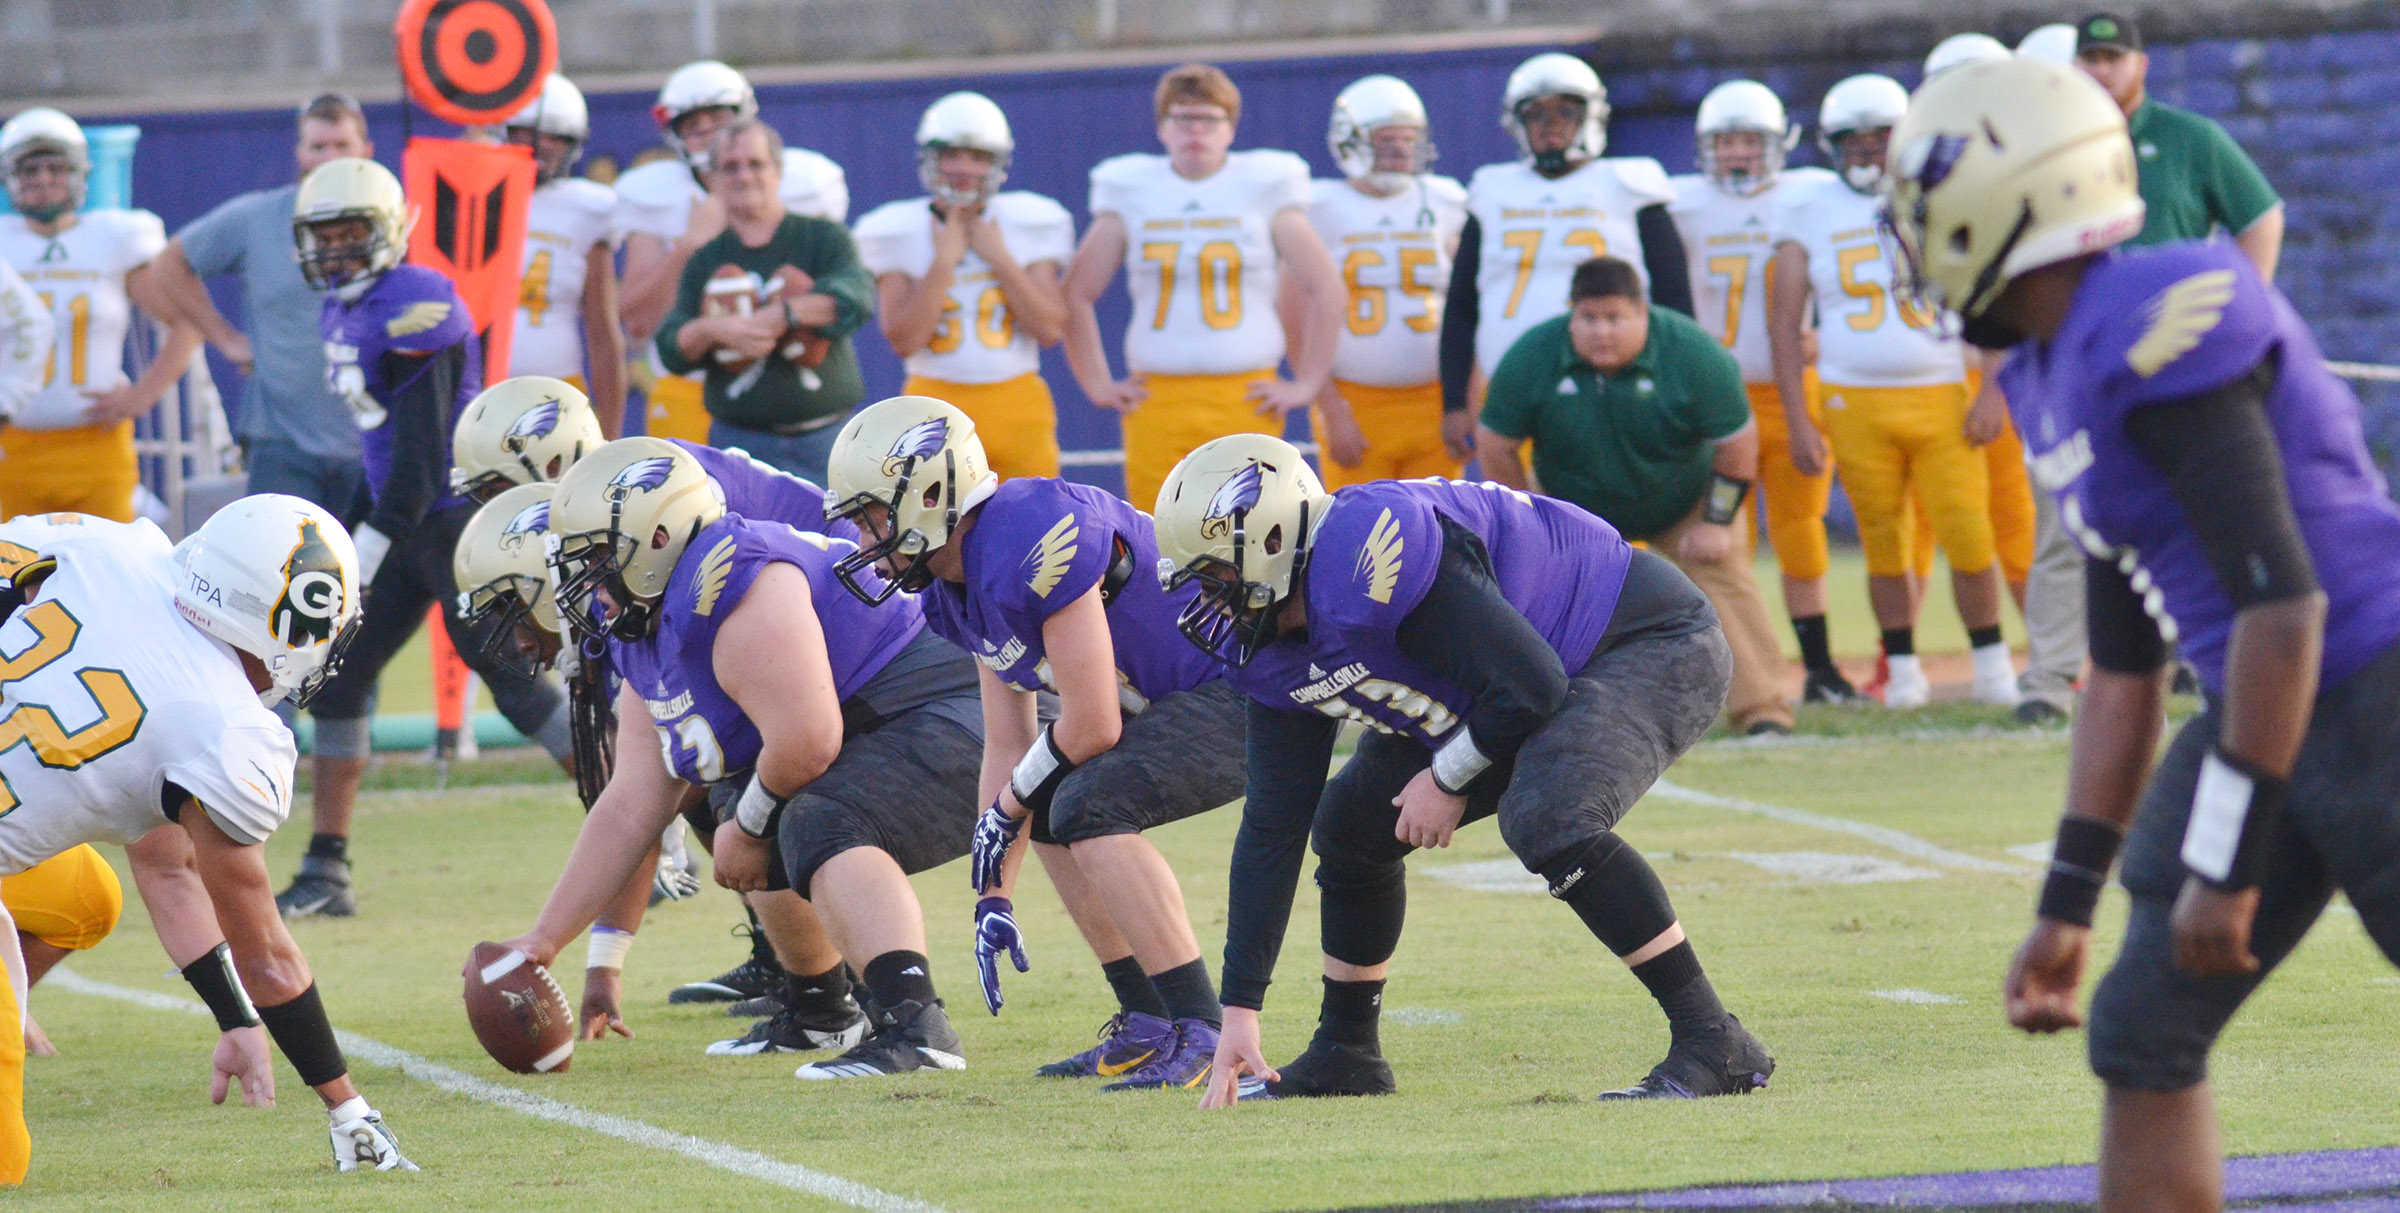 CHS offensive linemen get ready for the snap.